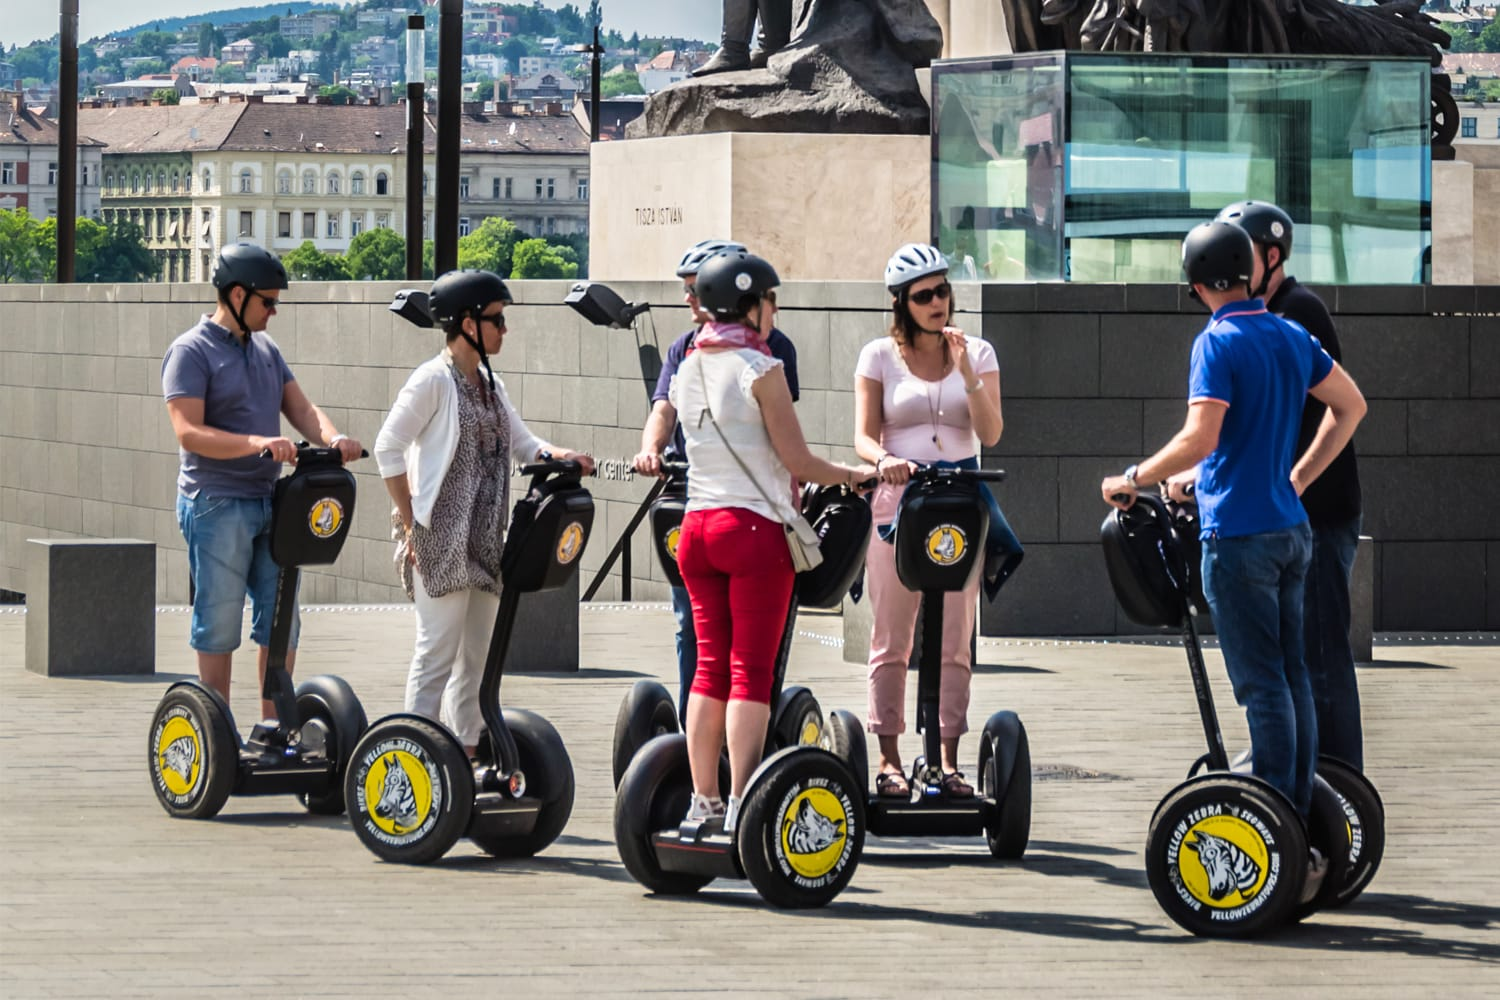 Group of tourists on Segway electric vehicles outside the Hungarian Parliament building in central Budapest, Hungary